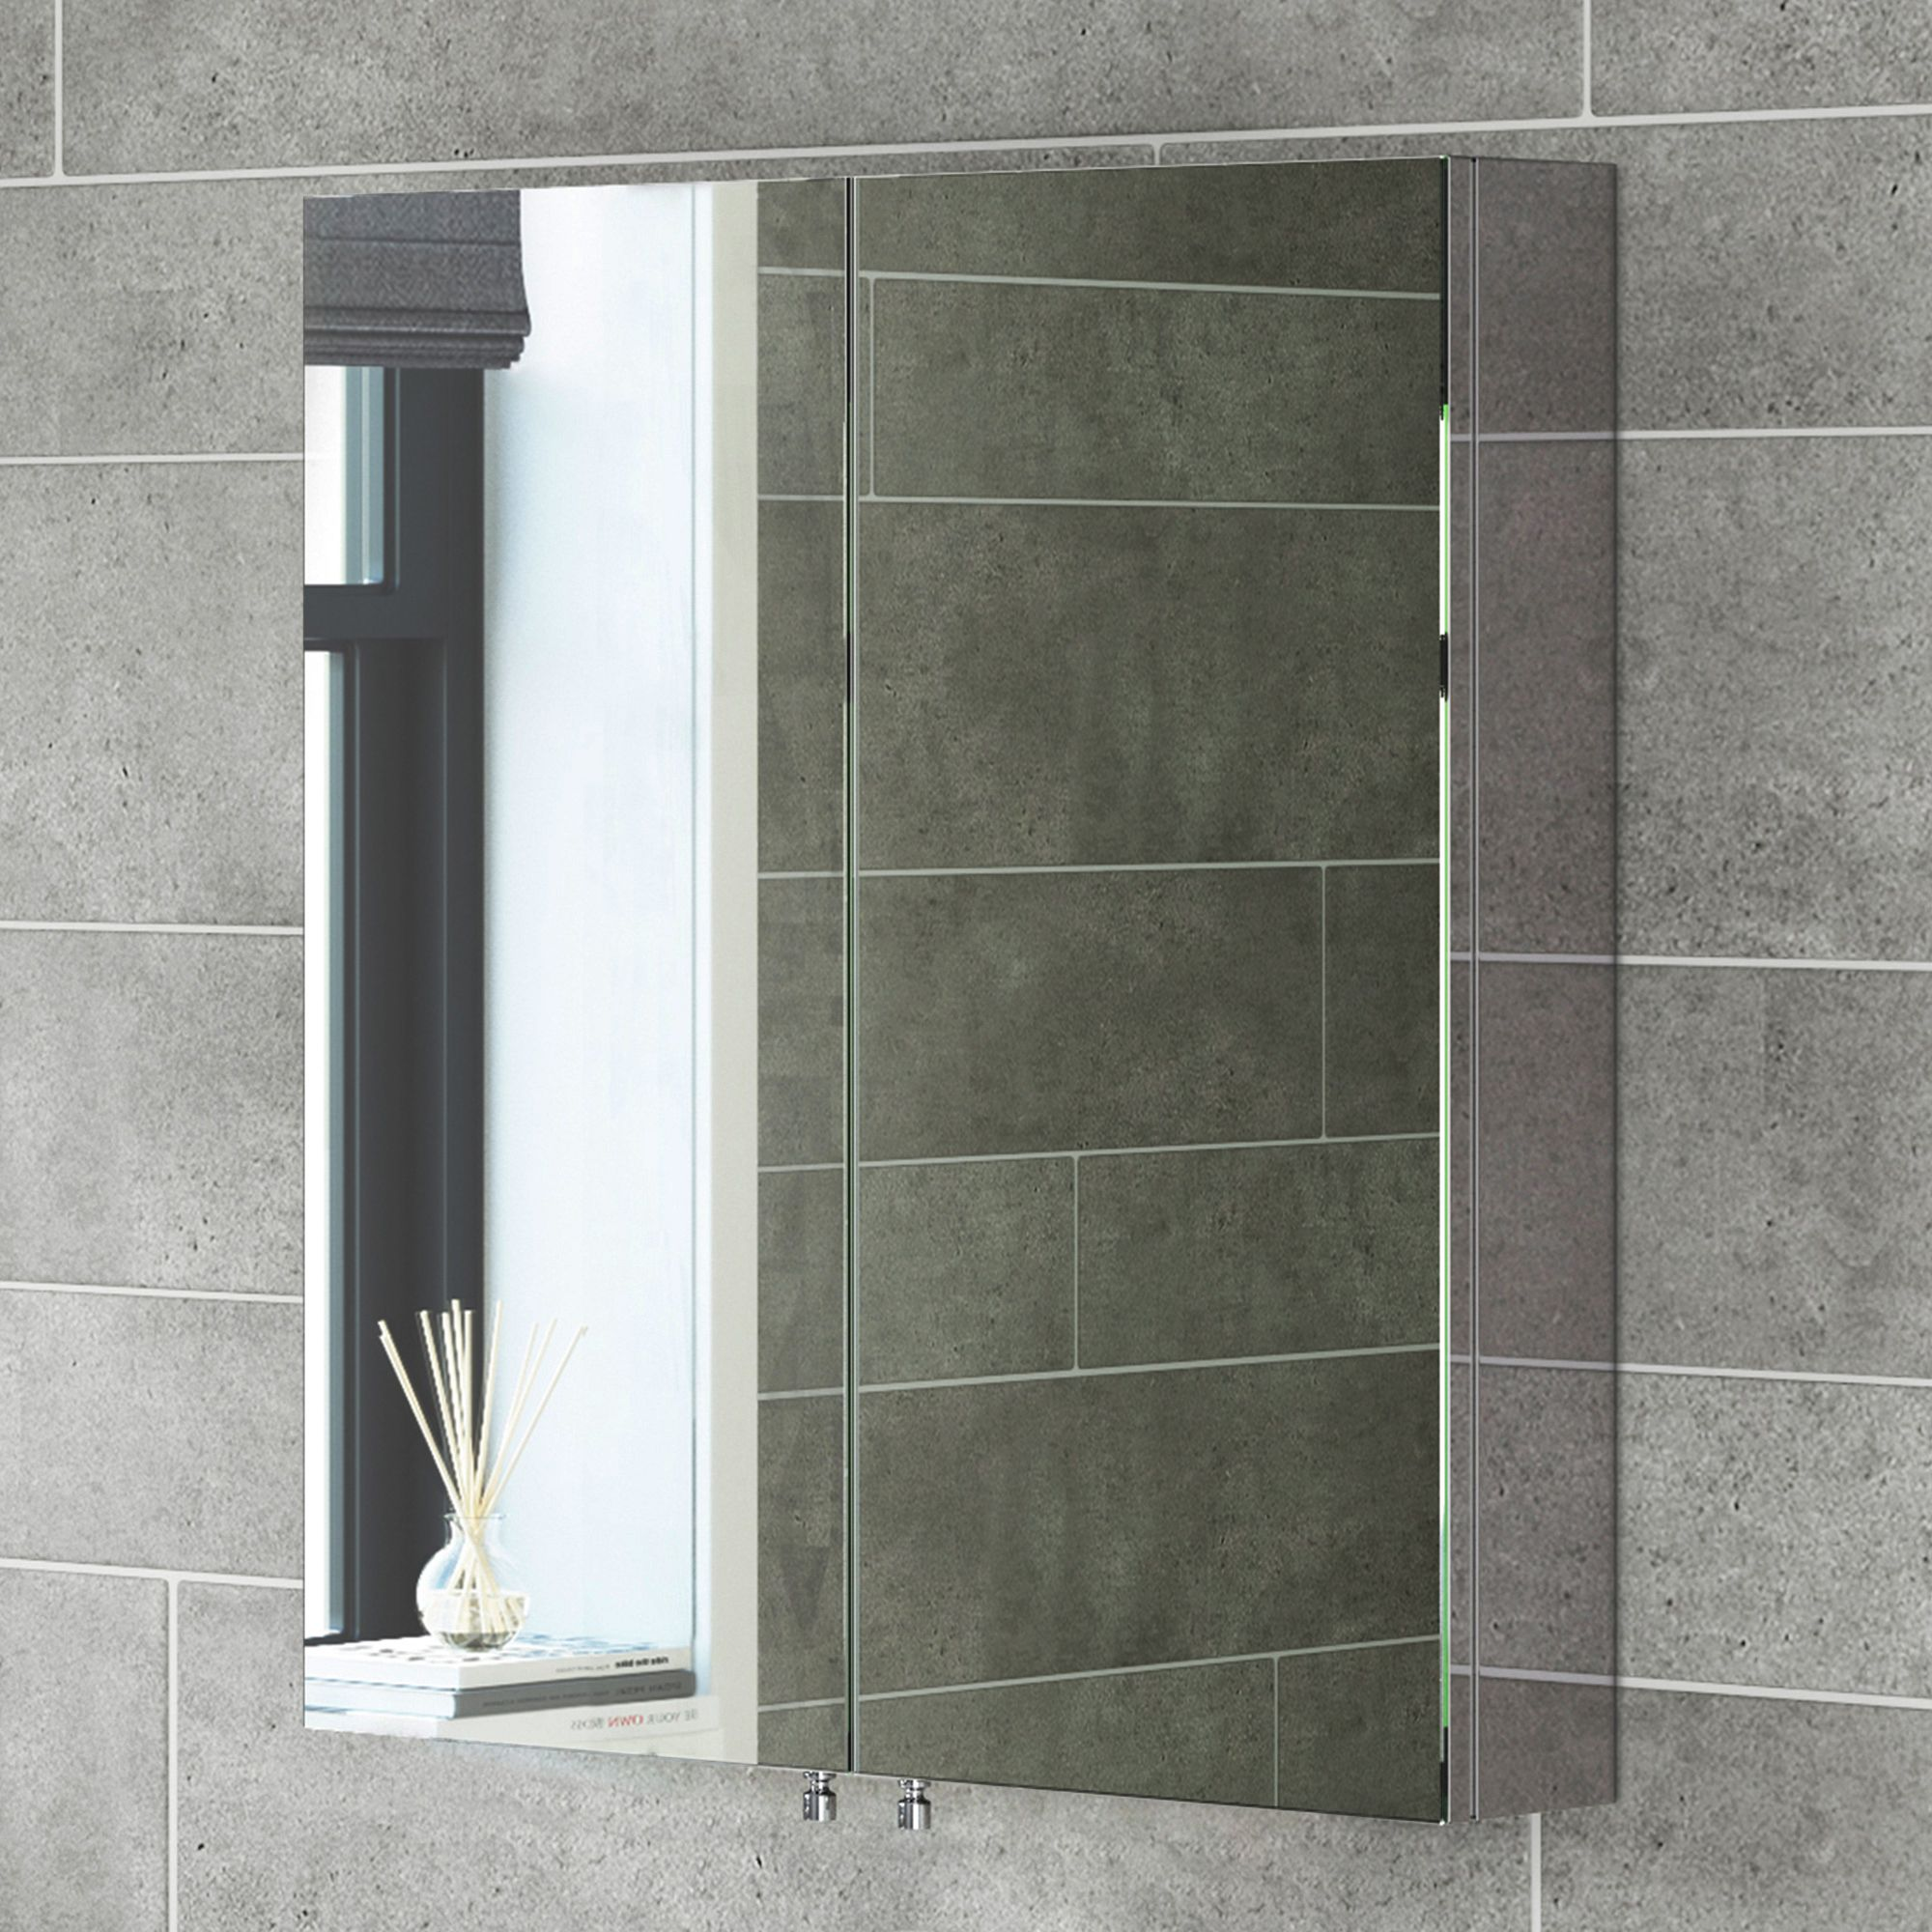 modern bathroom mirror cabinets. Find The Best Bathroom Furniture In UK For Lowest Prices. A Chic Addition To Any Bathroom, We Mainly Stock Modern Furniture. Mirror Cabinets R